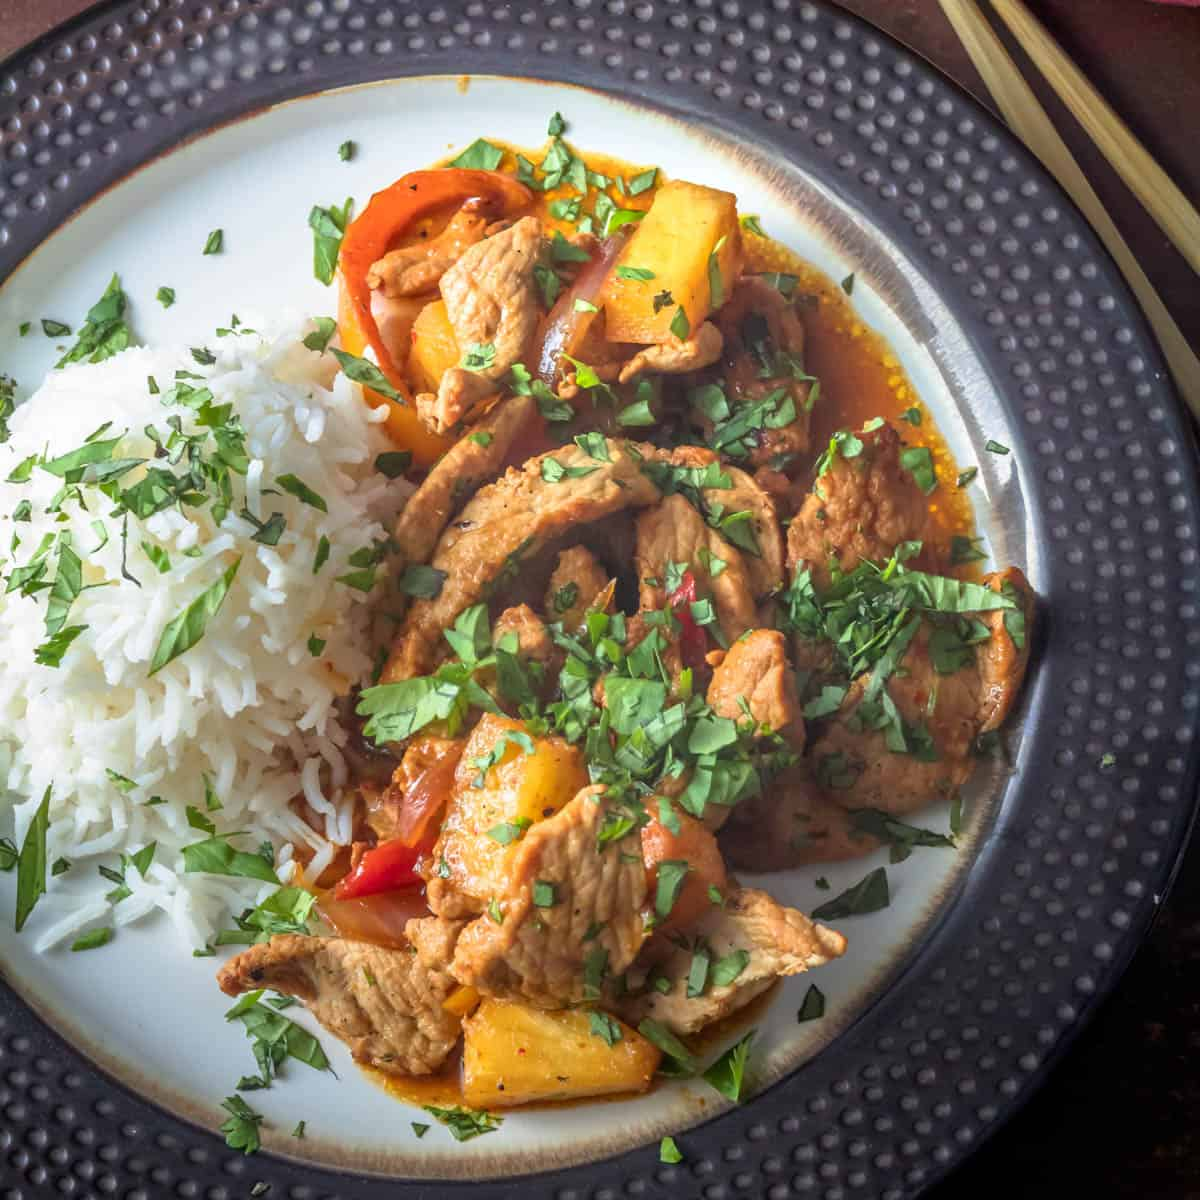 Thai Pork and Pineapple Curry in a bronze rimmed plate with white rice.